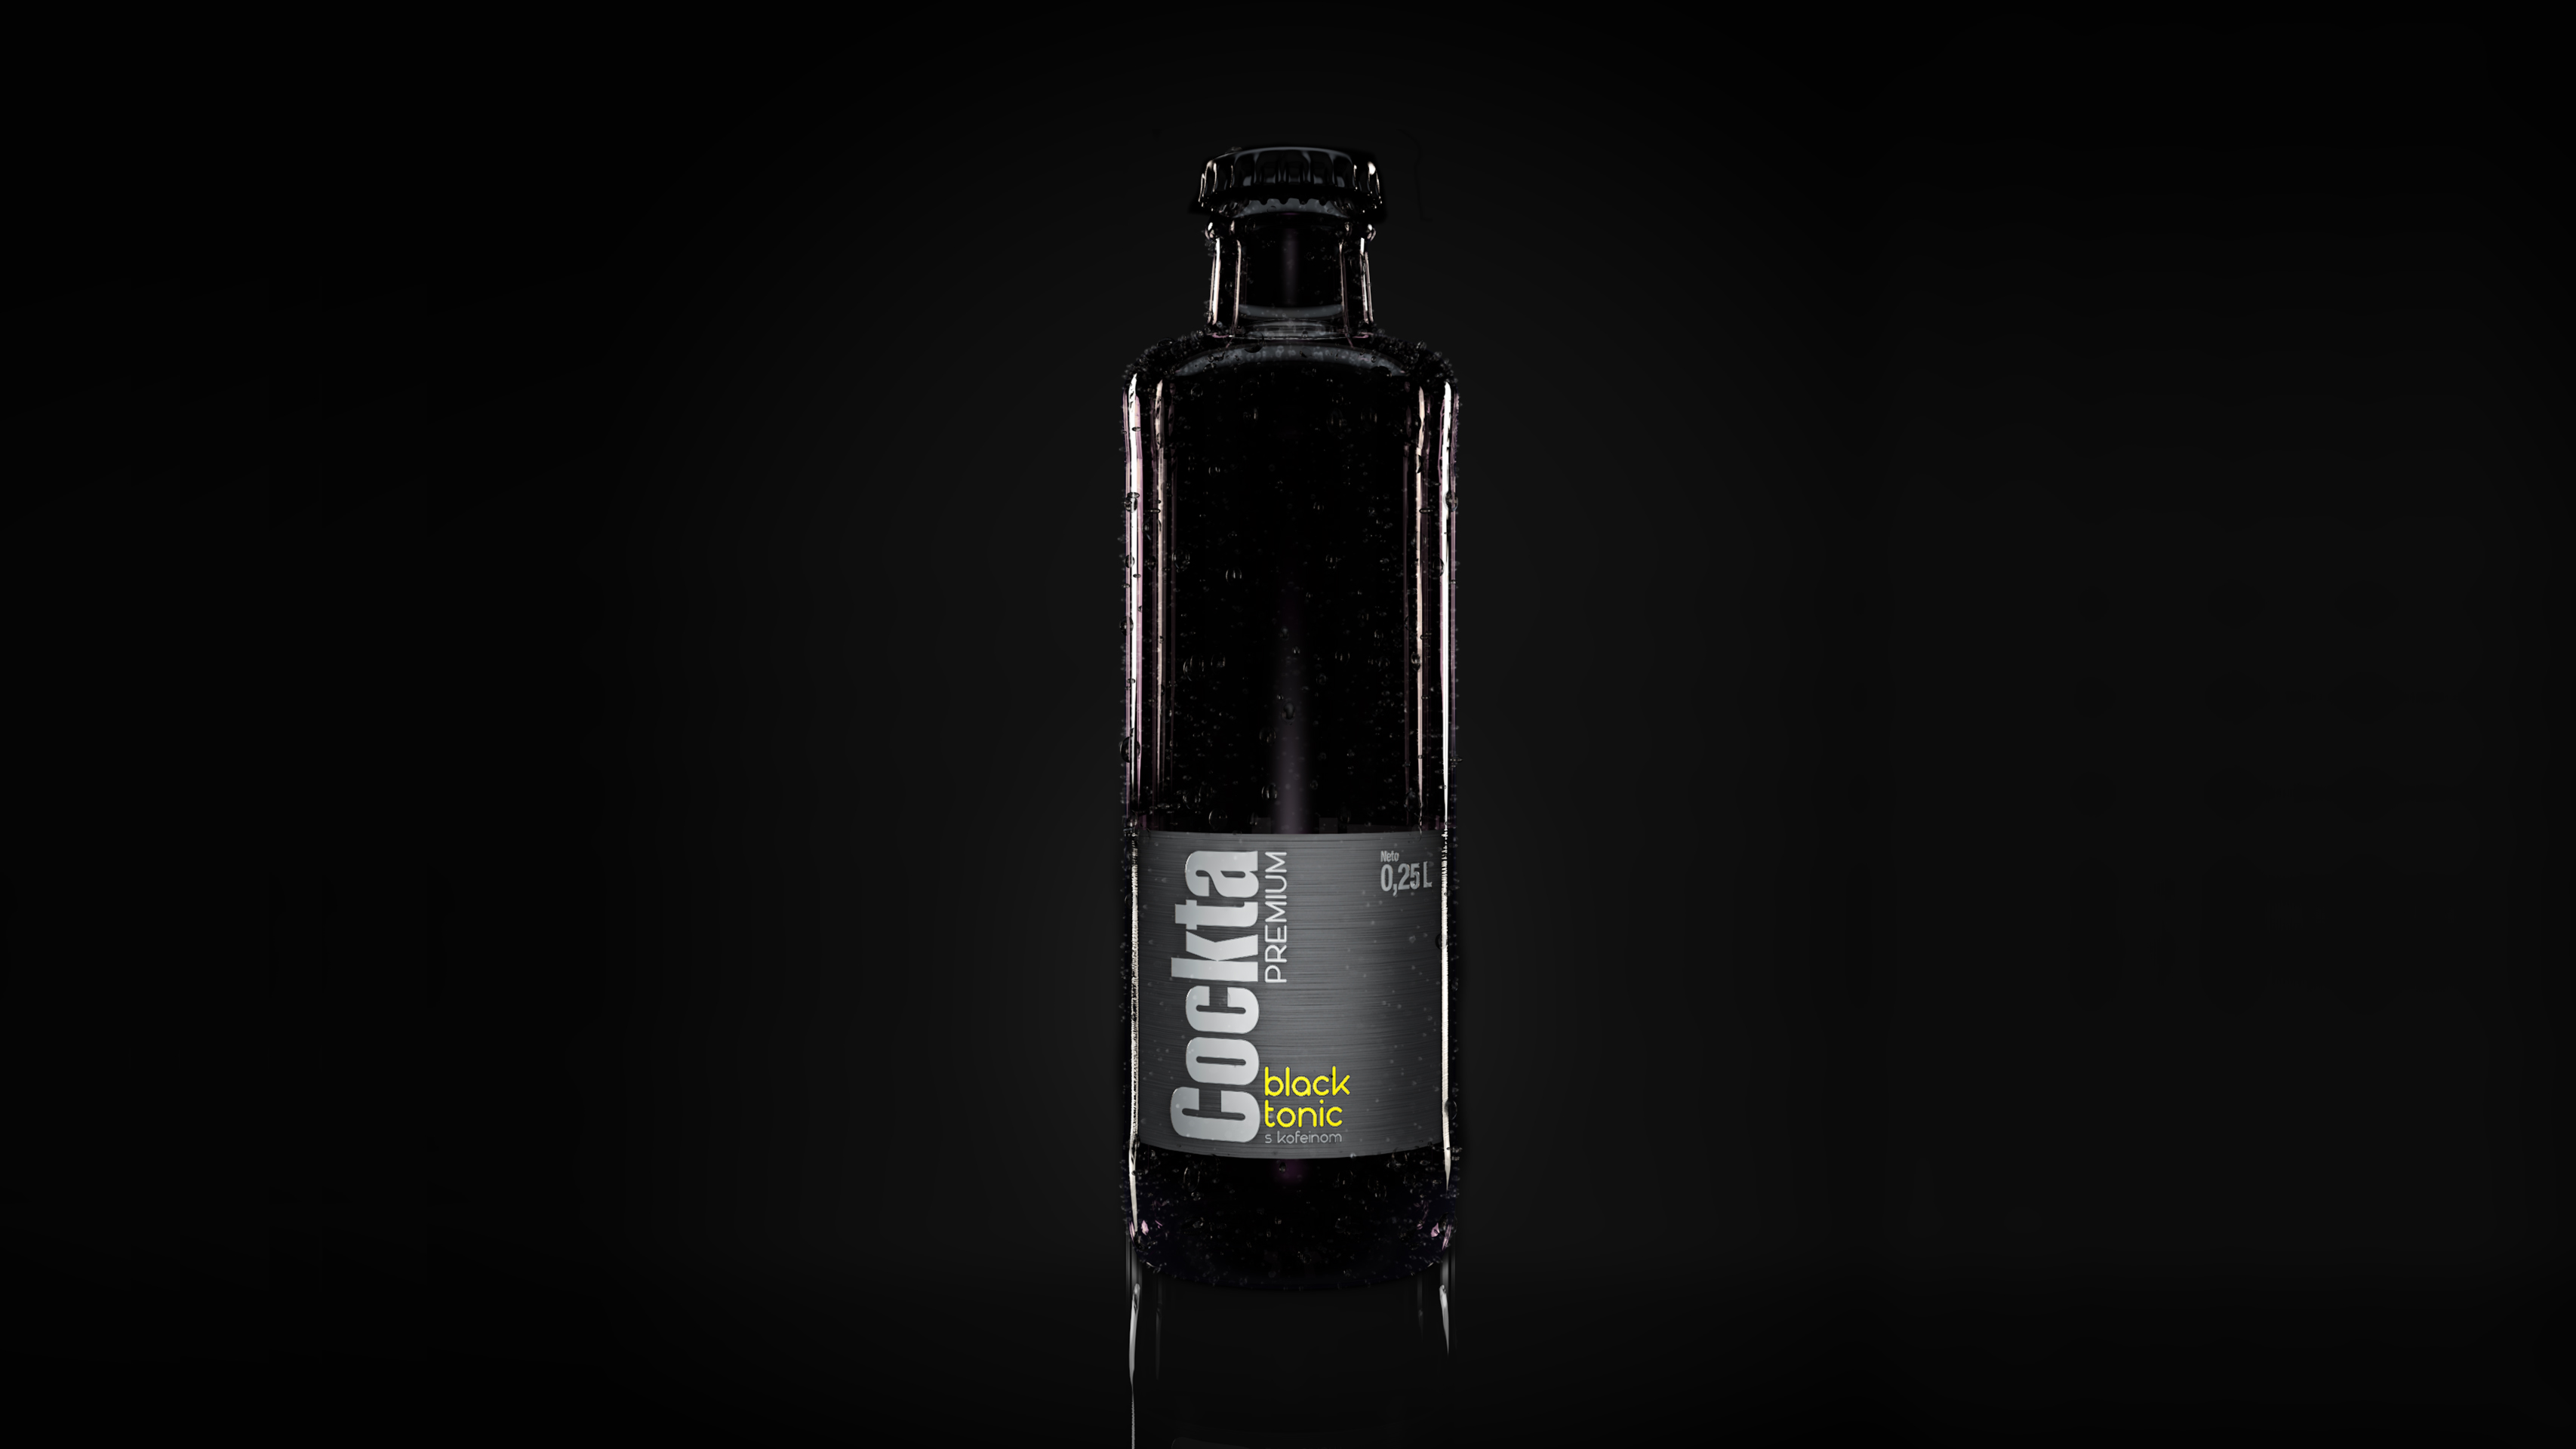 Cockta Black Tonic - Vidrio